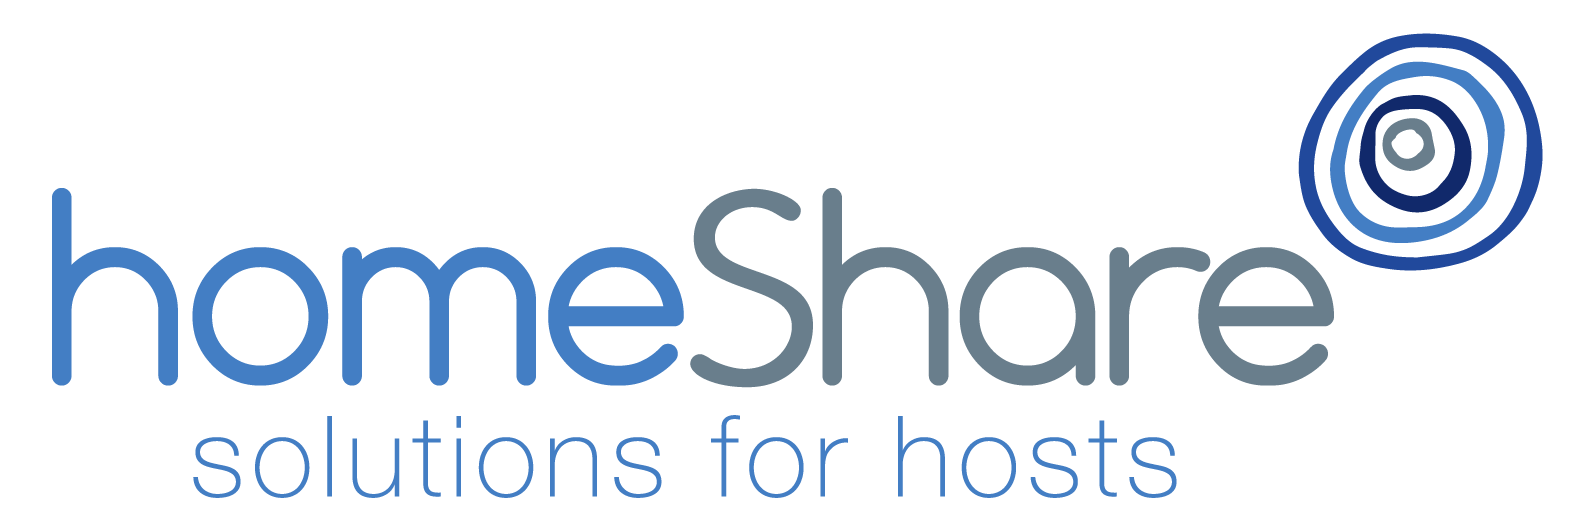 HomeShare Solutions for hosts